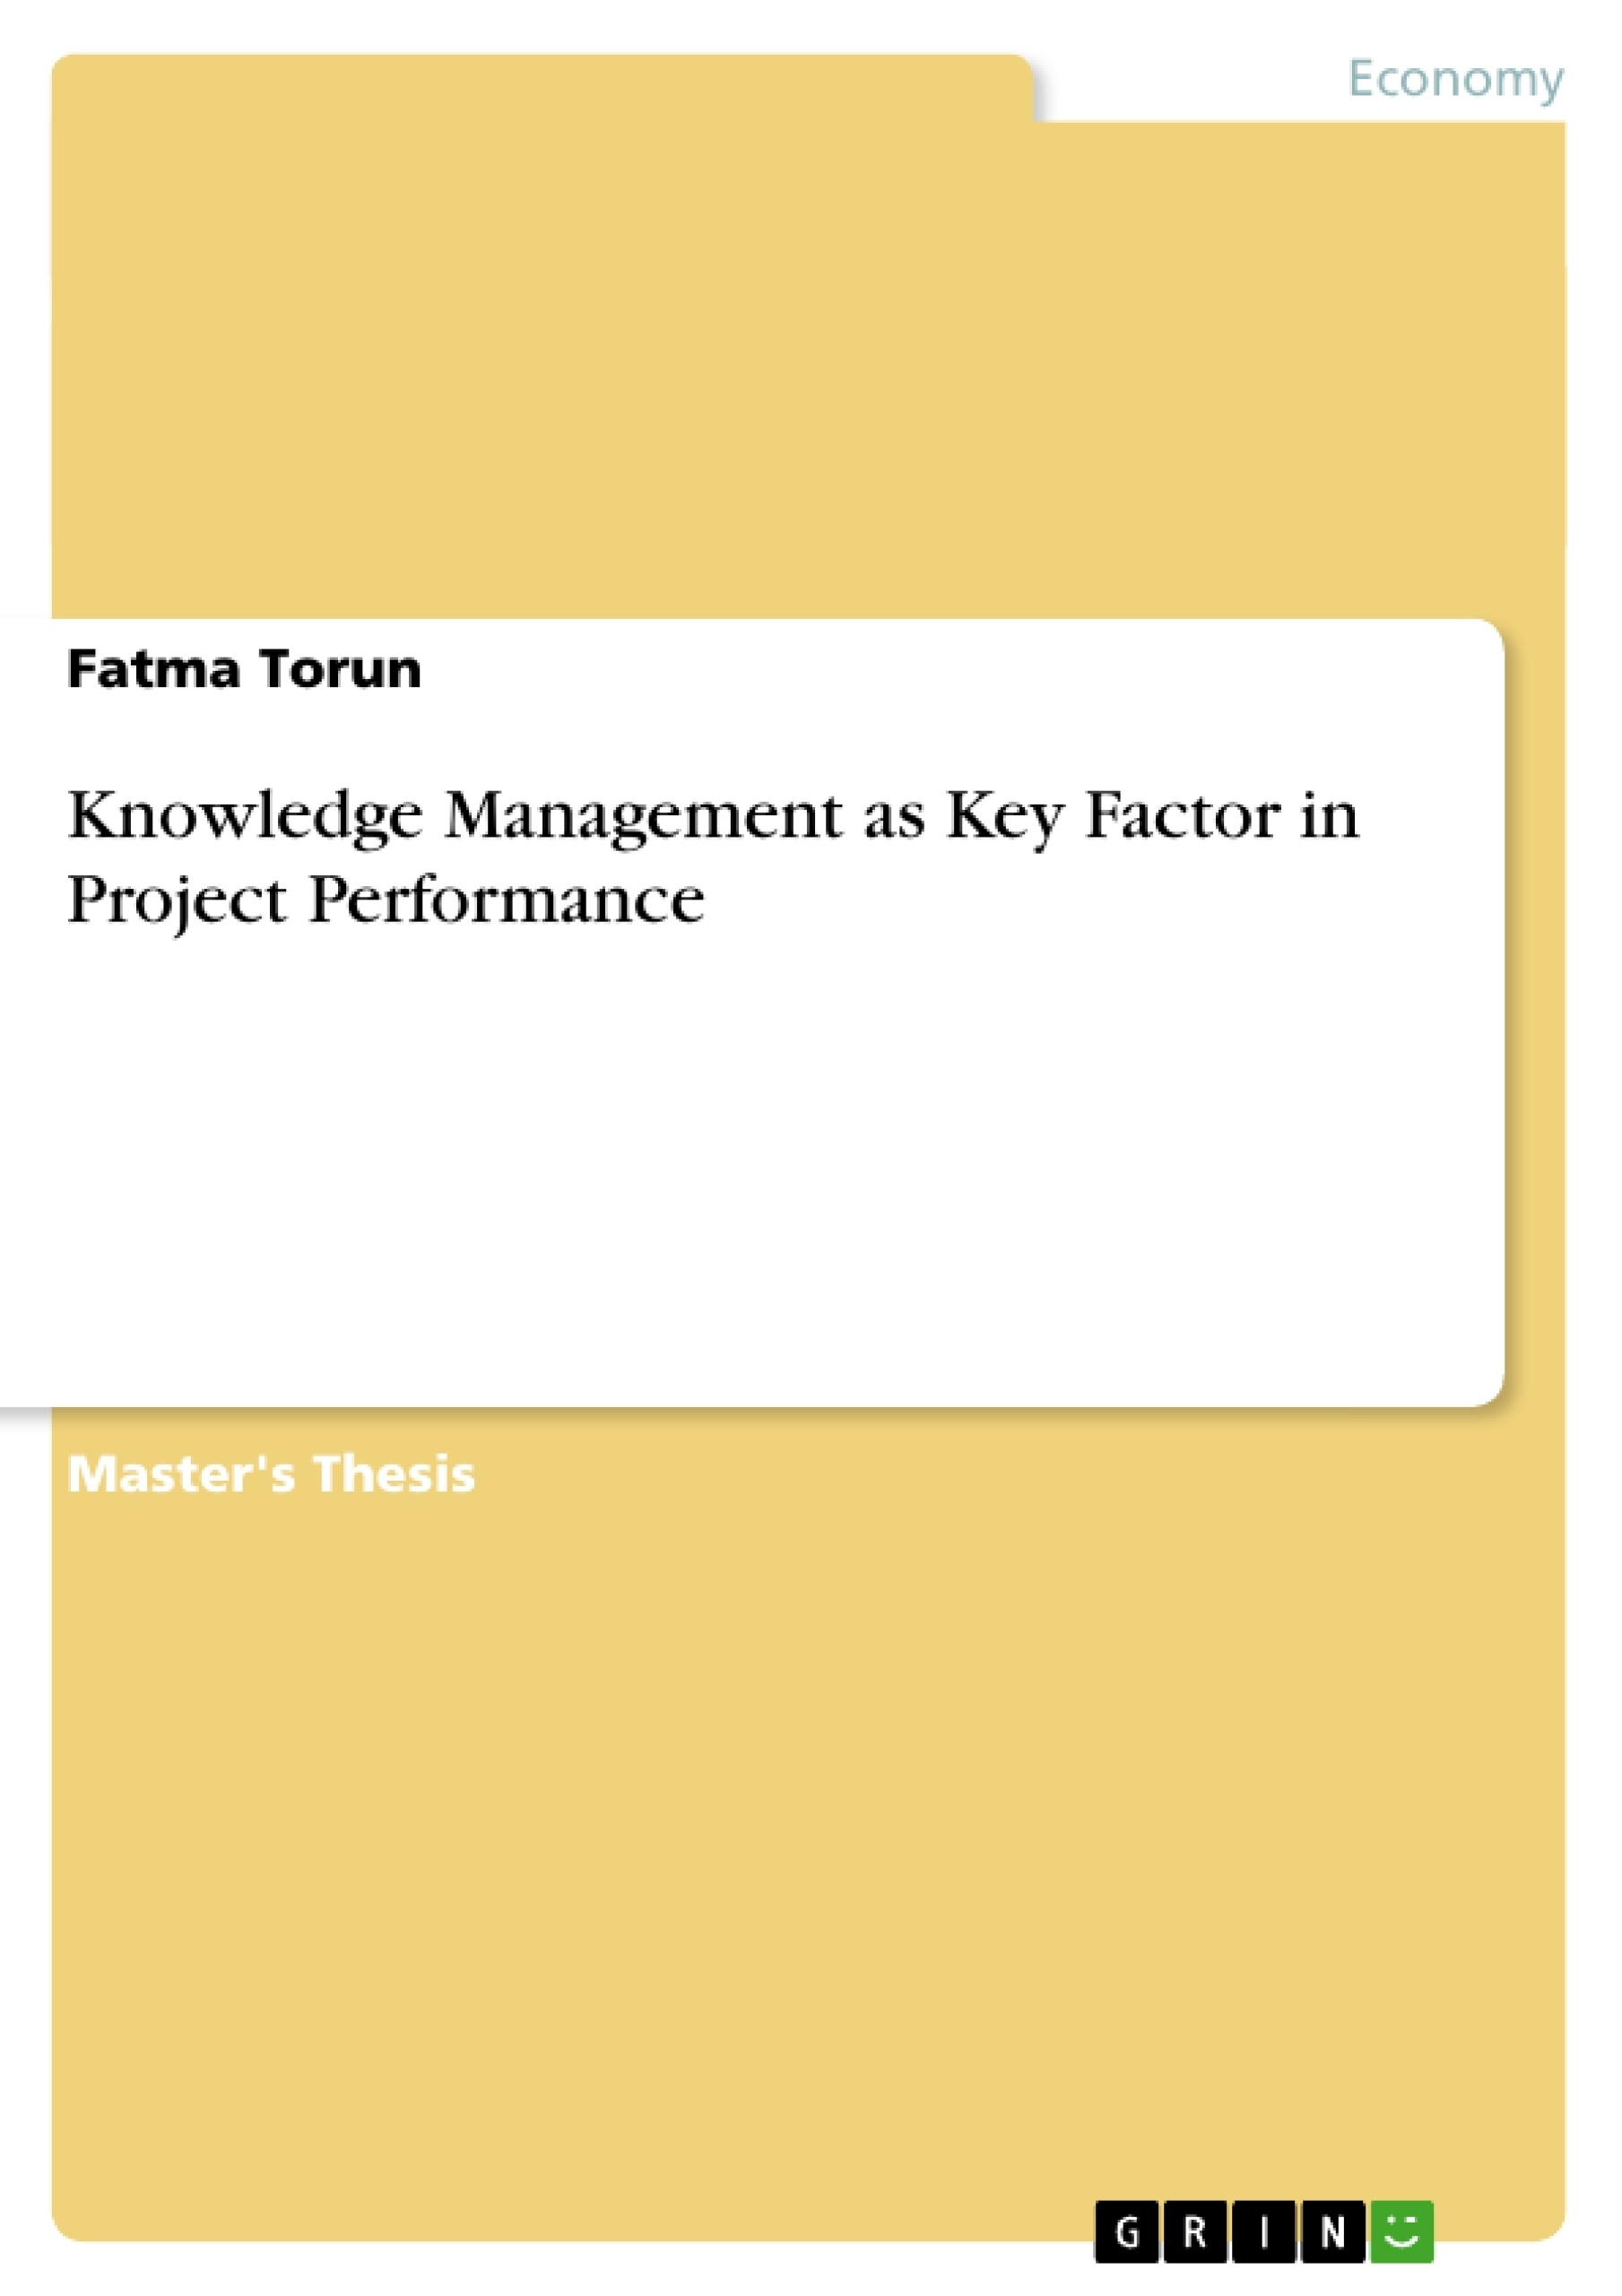 Title: Knowledge Management as Key Factor in Project Performance